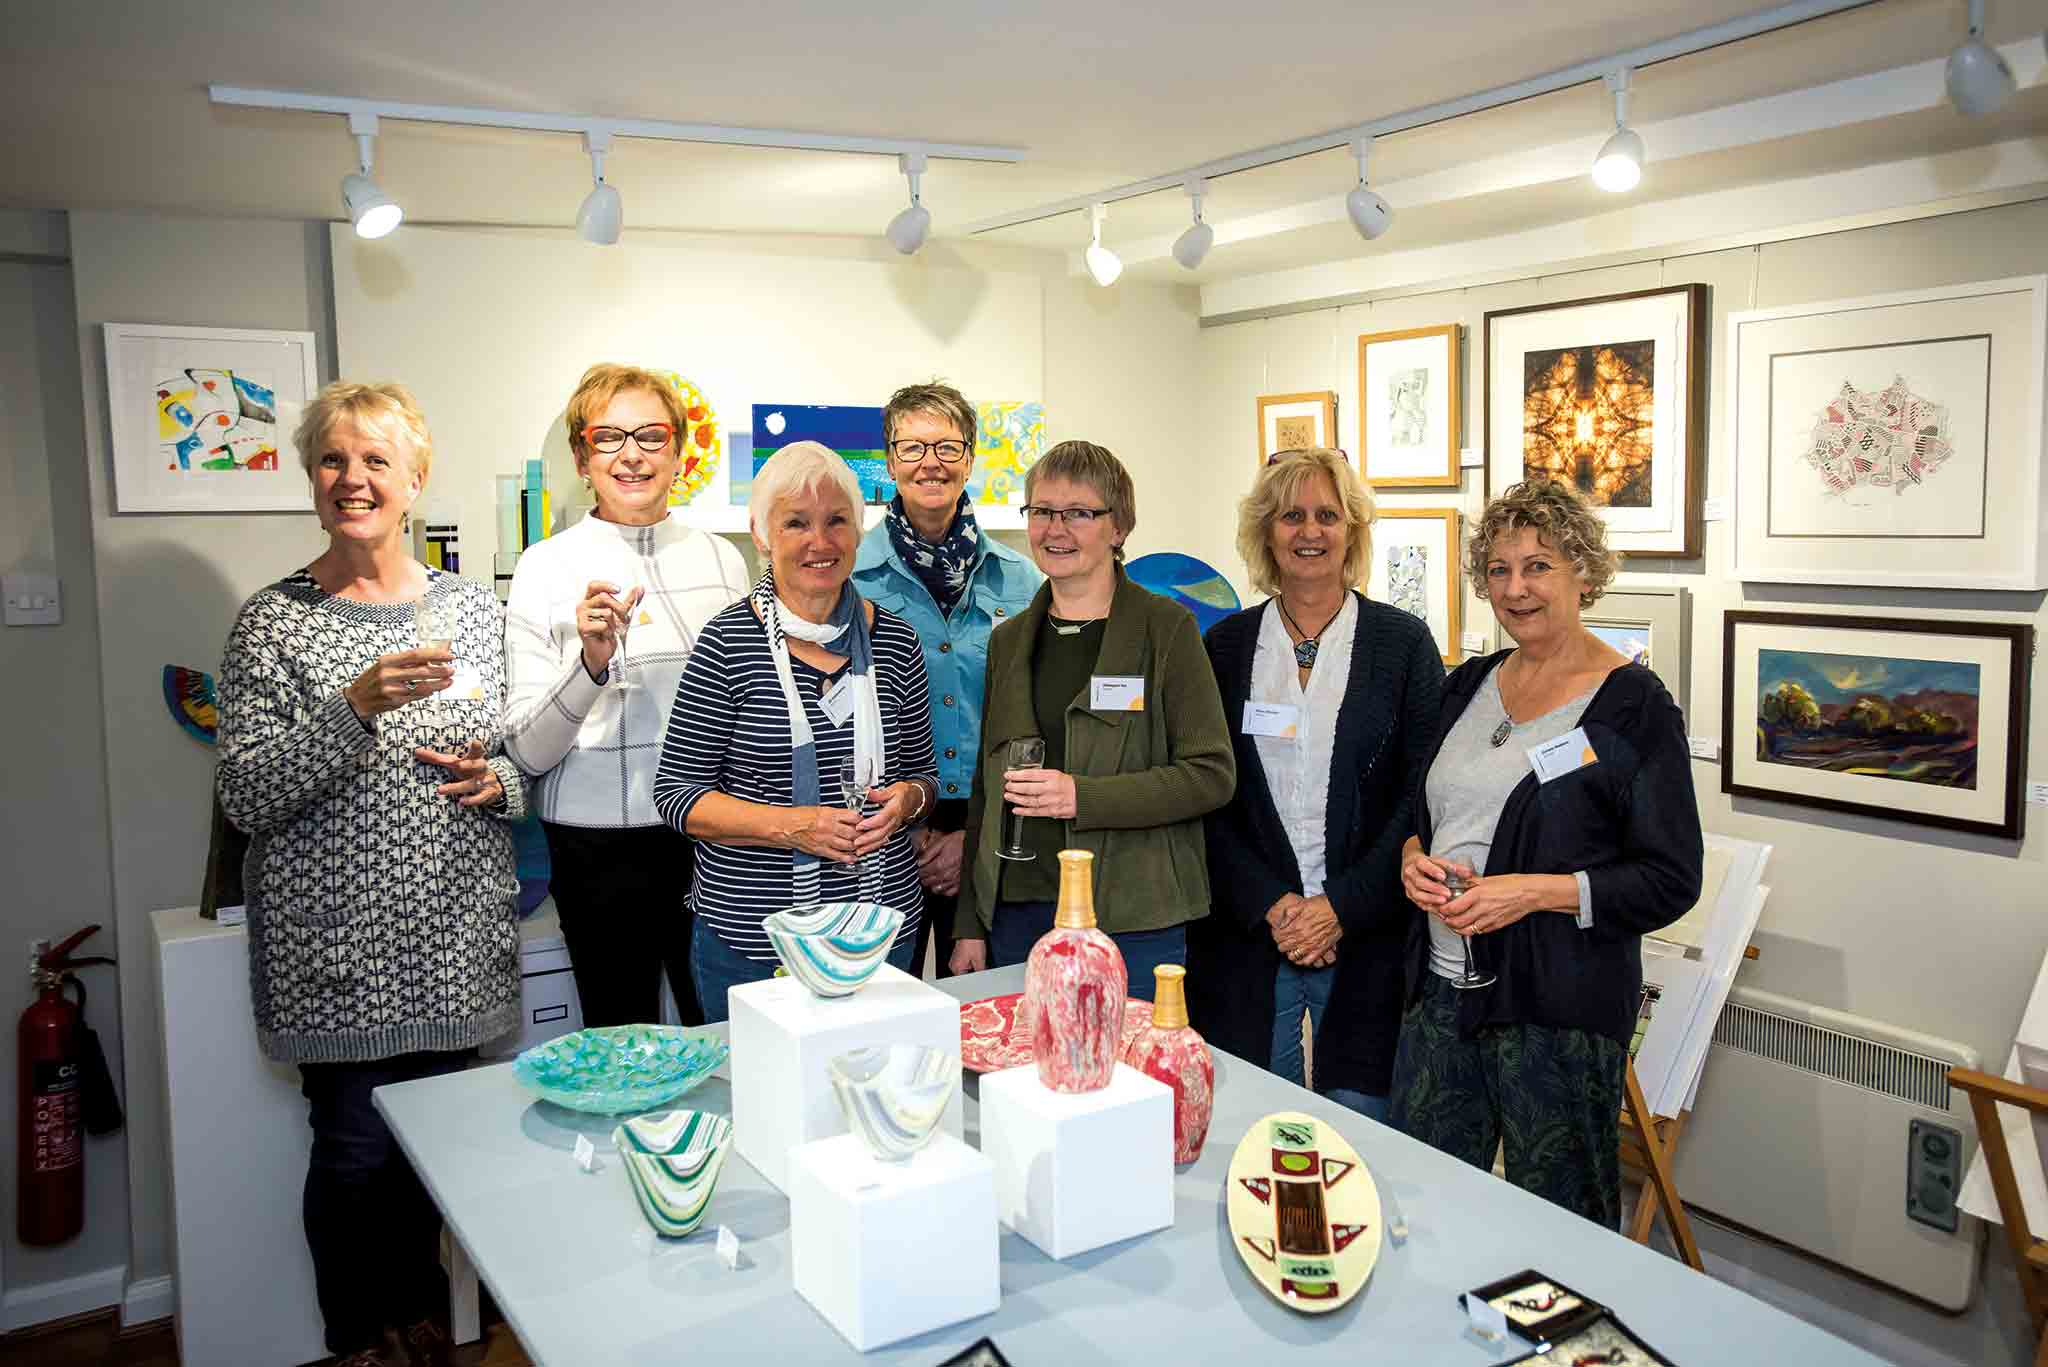 The ArtSpring Gallery Tonbridge